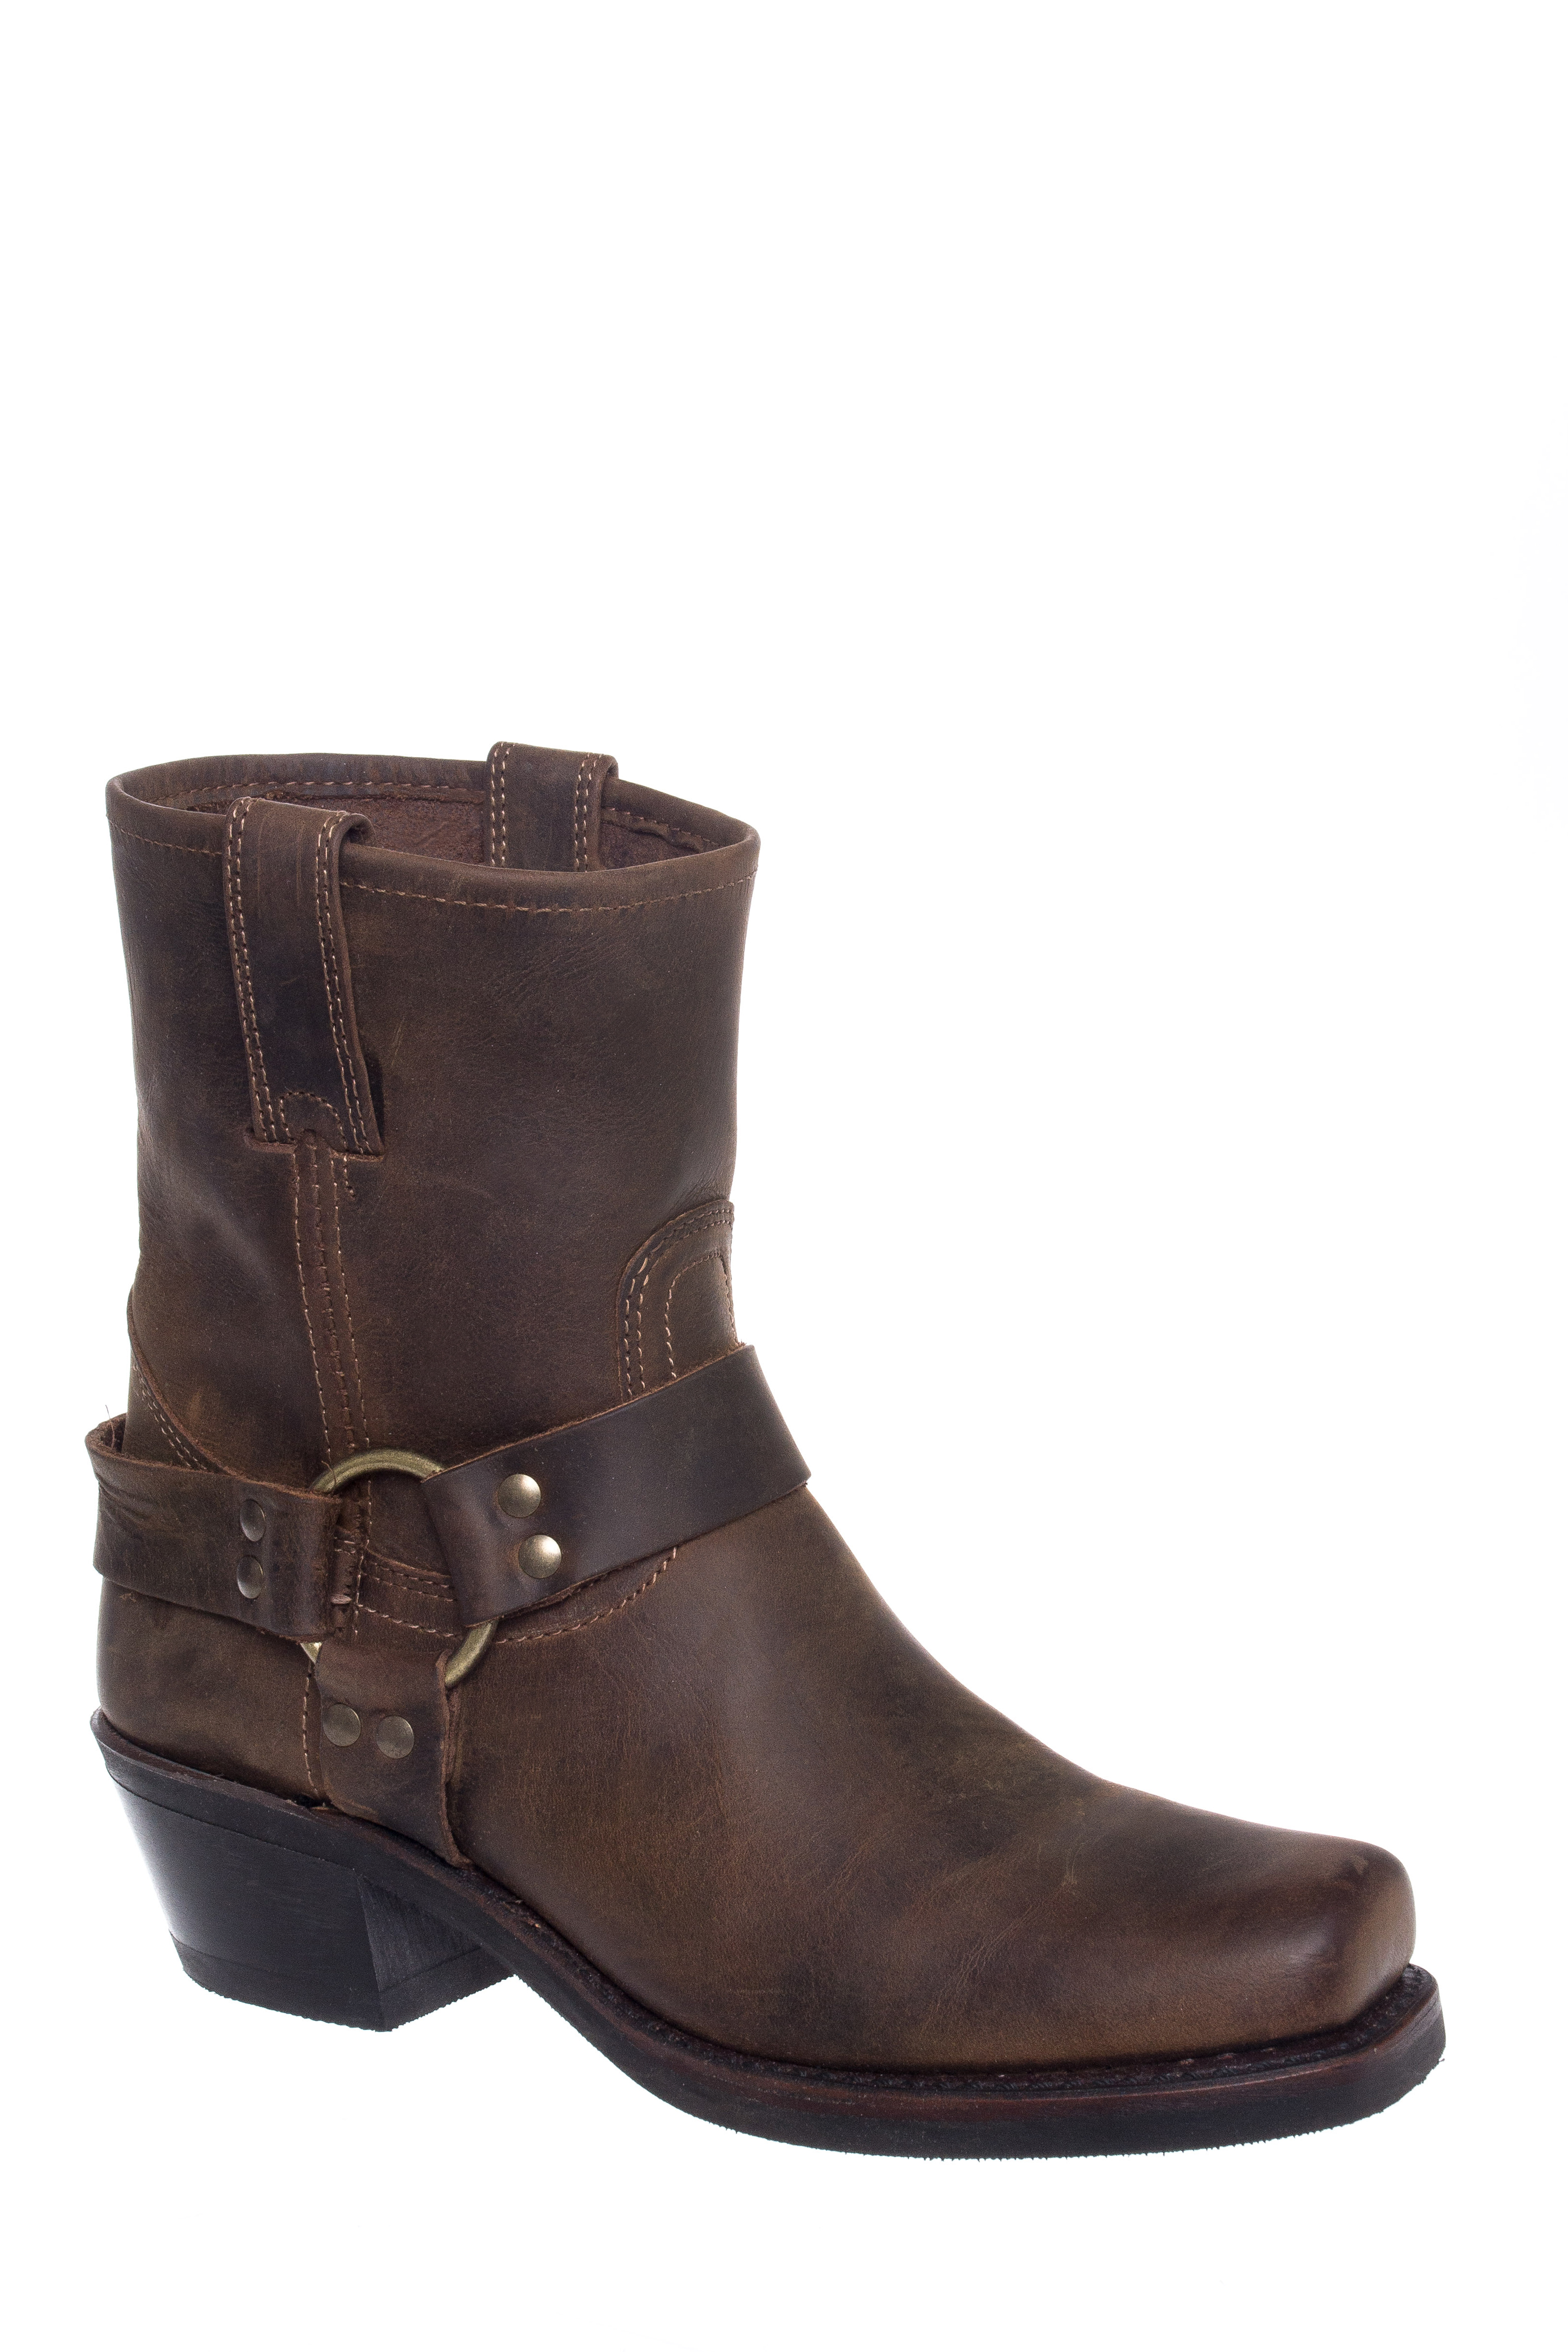 Frye Harness 8R Ankle Boots - Tan